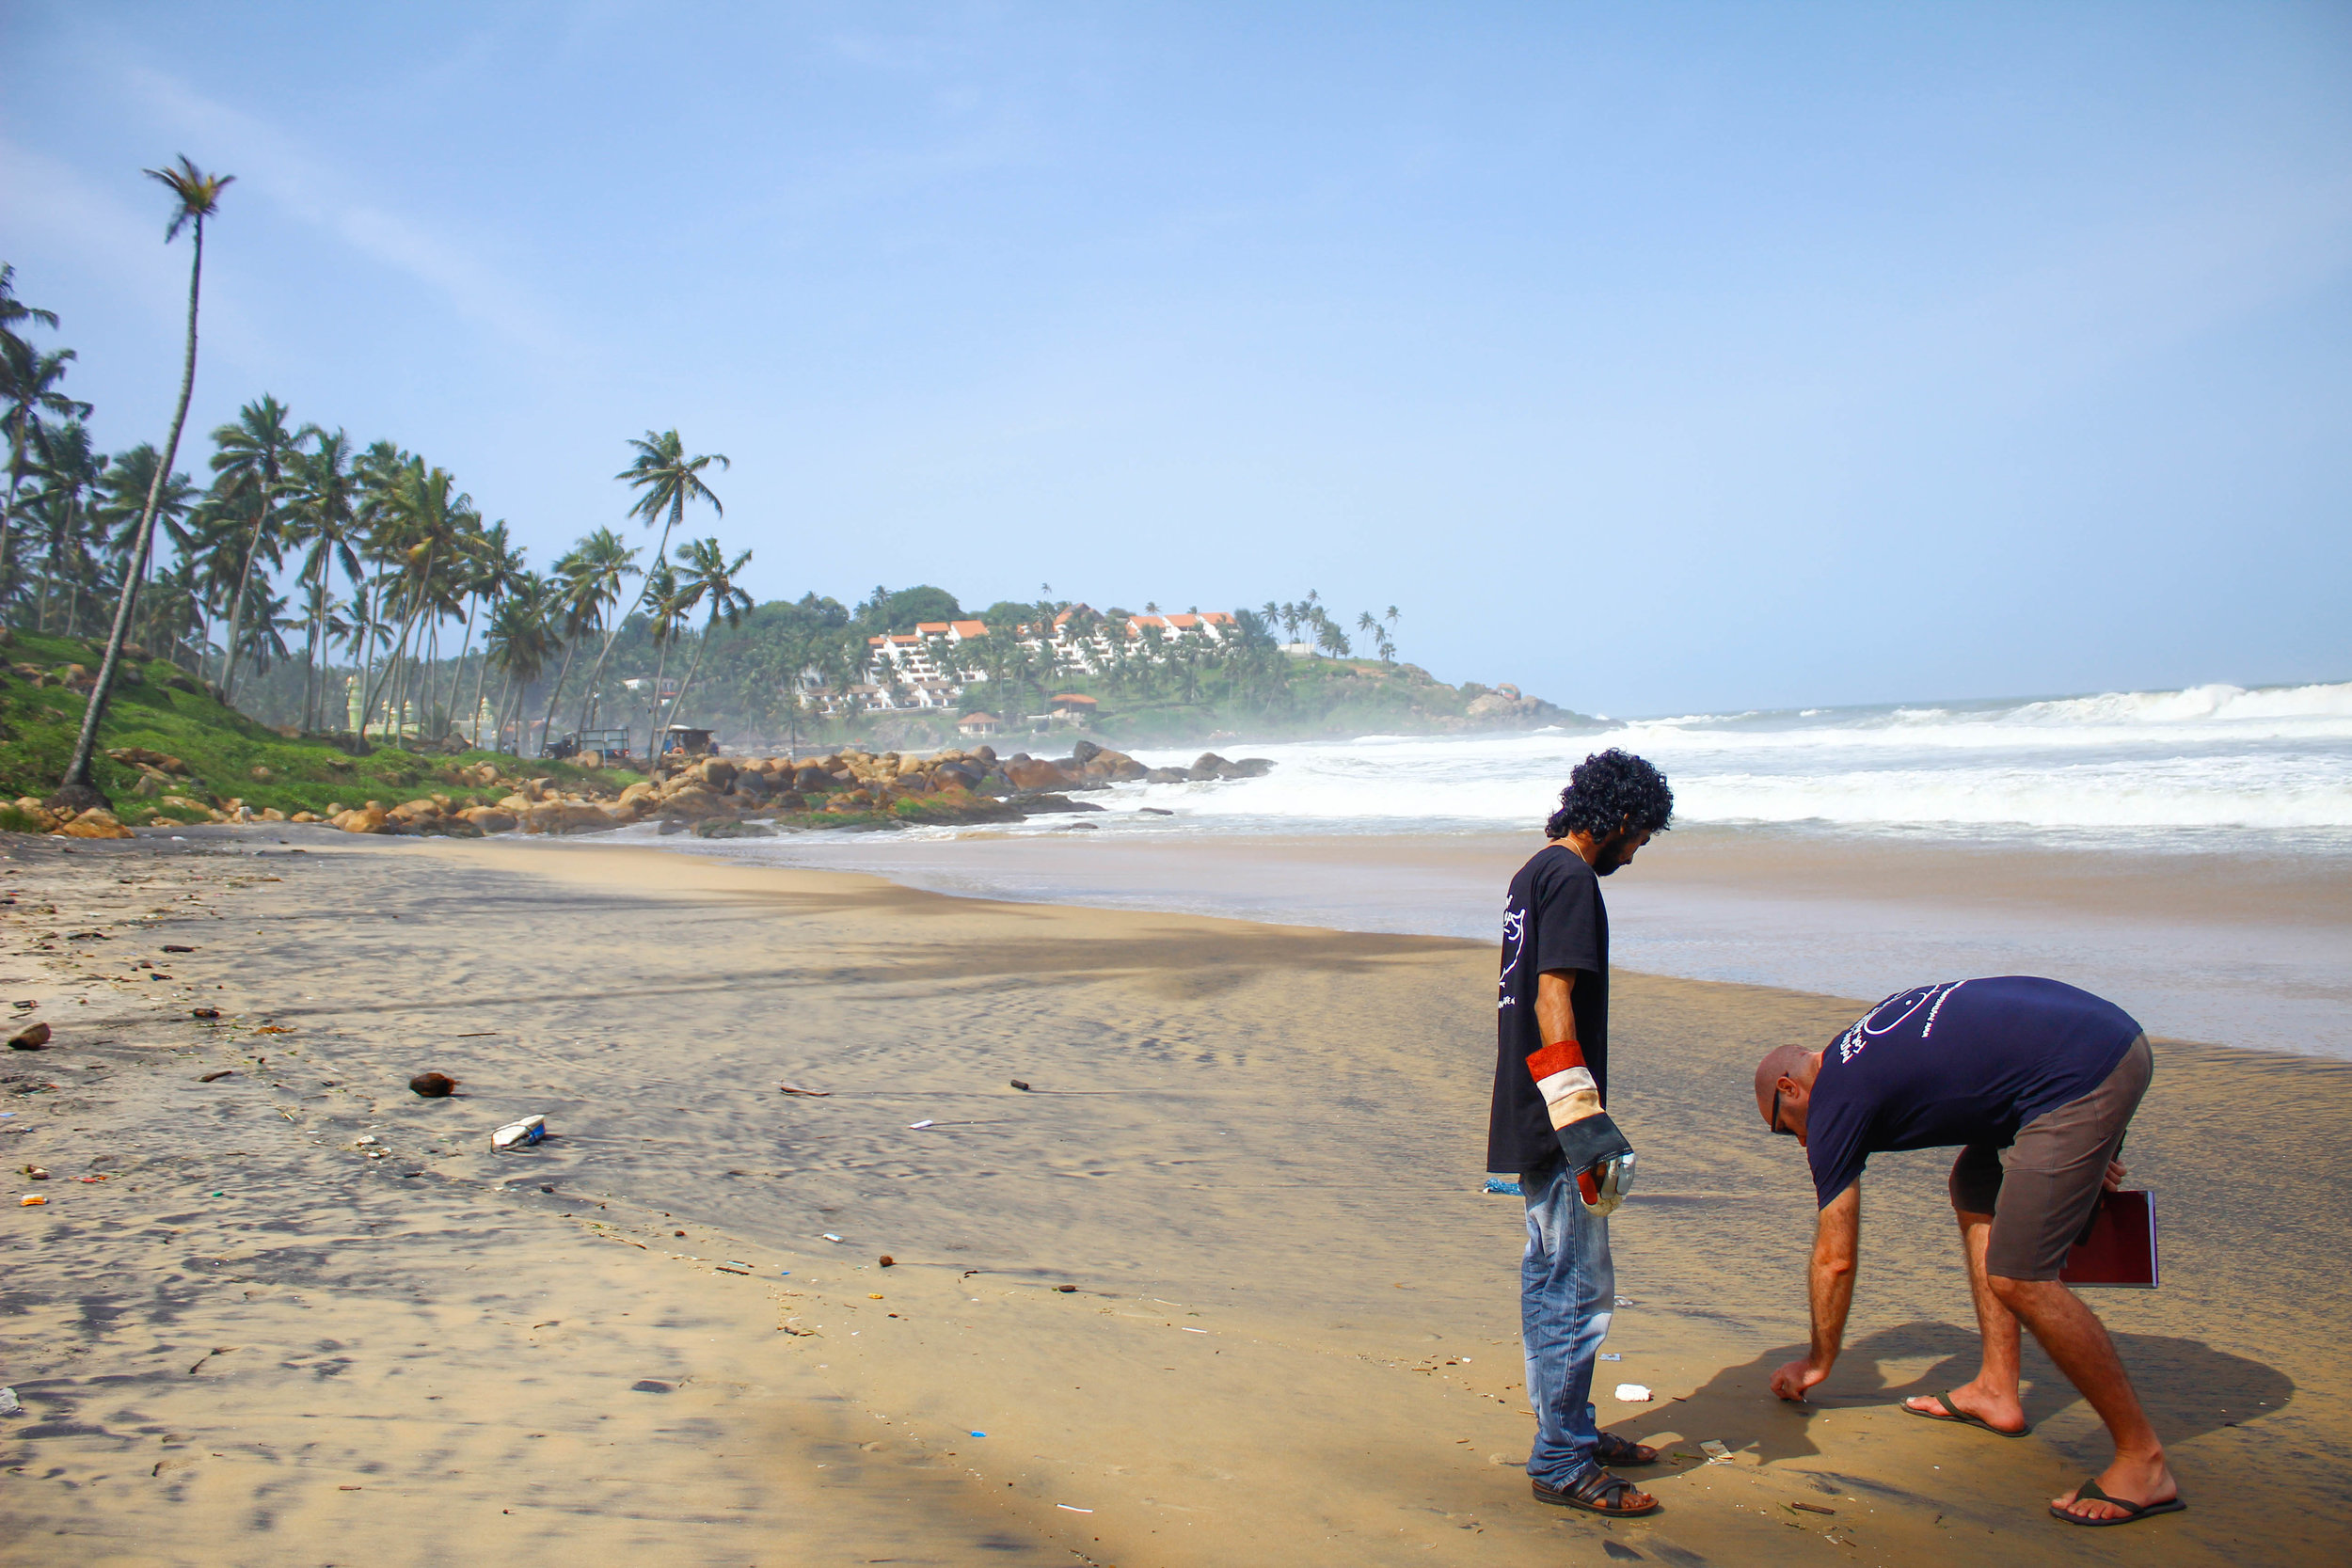 Krishna and Blake, our Global Program Co-ordinators, conducting a beach survey in Kovalam, Kerala, India.